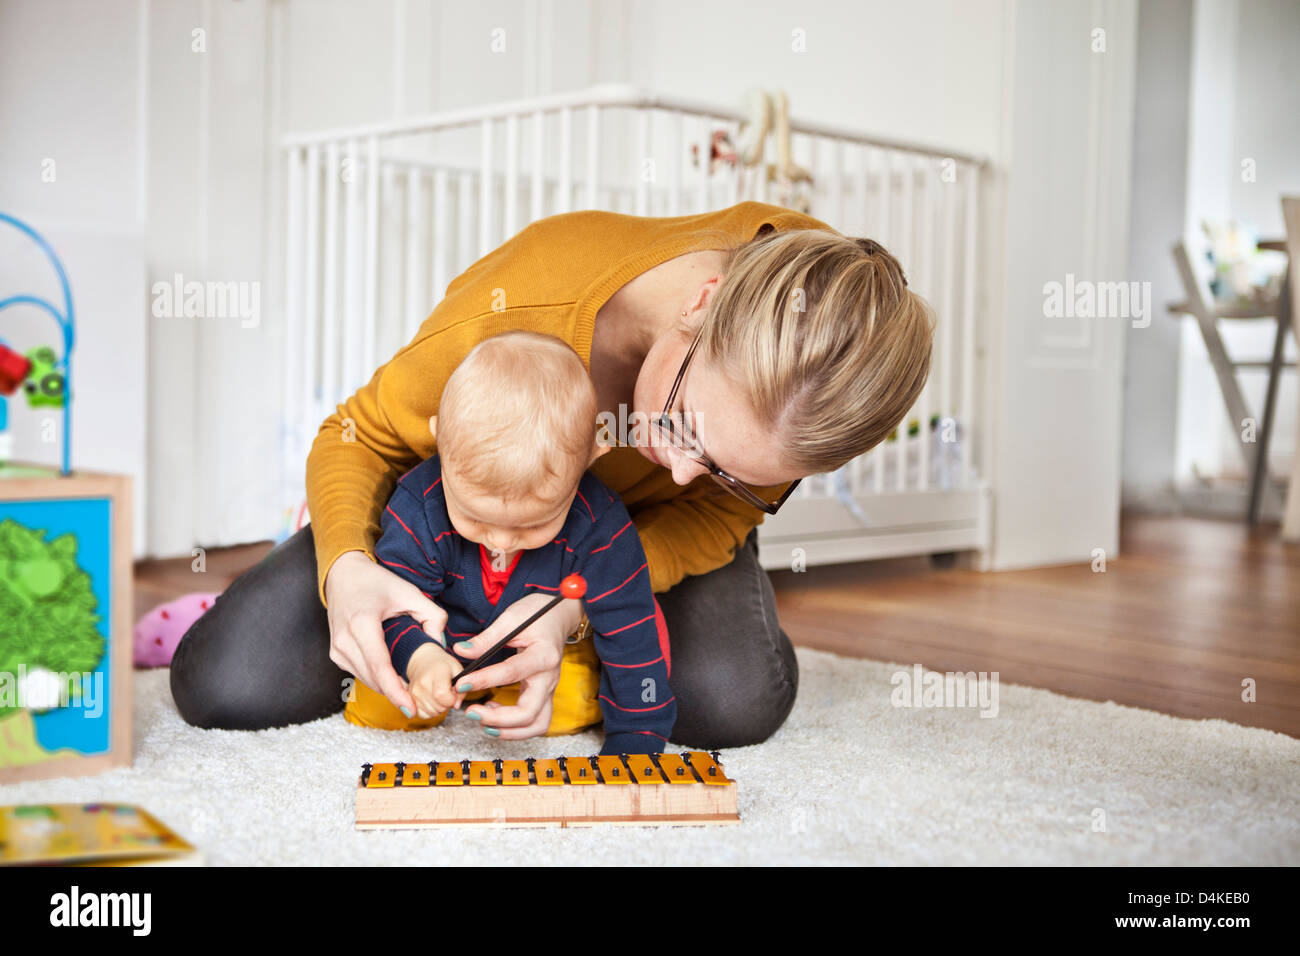 Mother and baby boy playing together - Stock Image